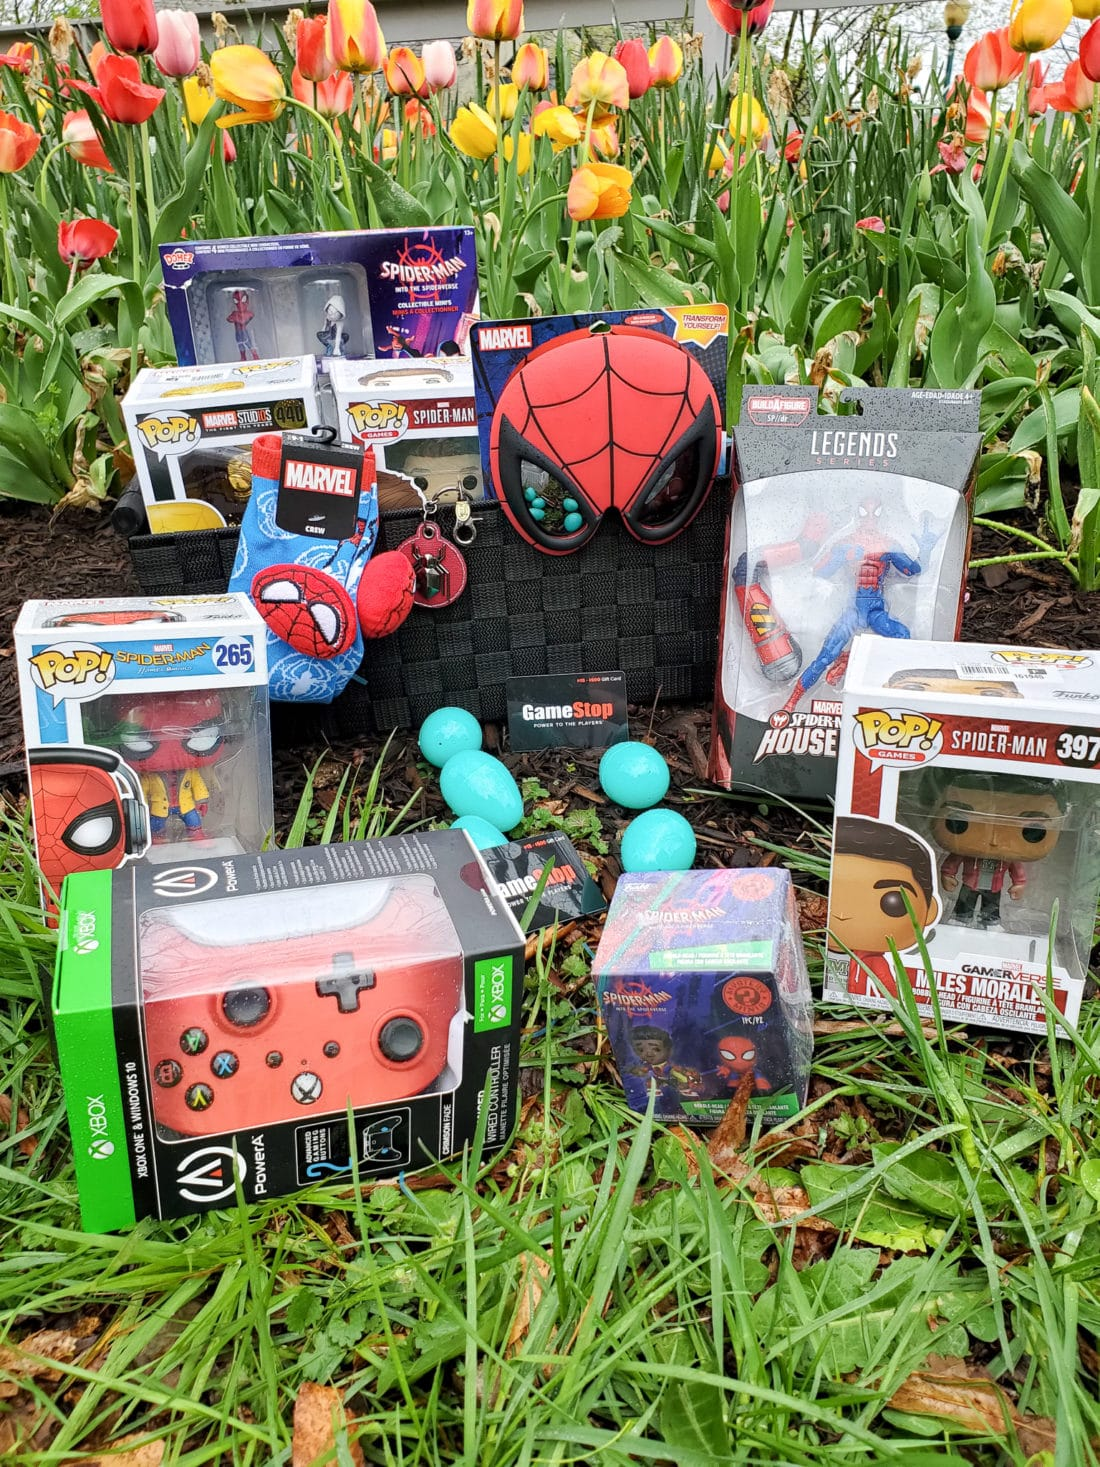 Spider-Man Easter Basket Display. Build your very own Spider-Man themed Easter Basket with a little help from your One-Stop-Shop GameStop. Gamestop has everything you need to build the ultimate Easter Basket for your teenager.